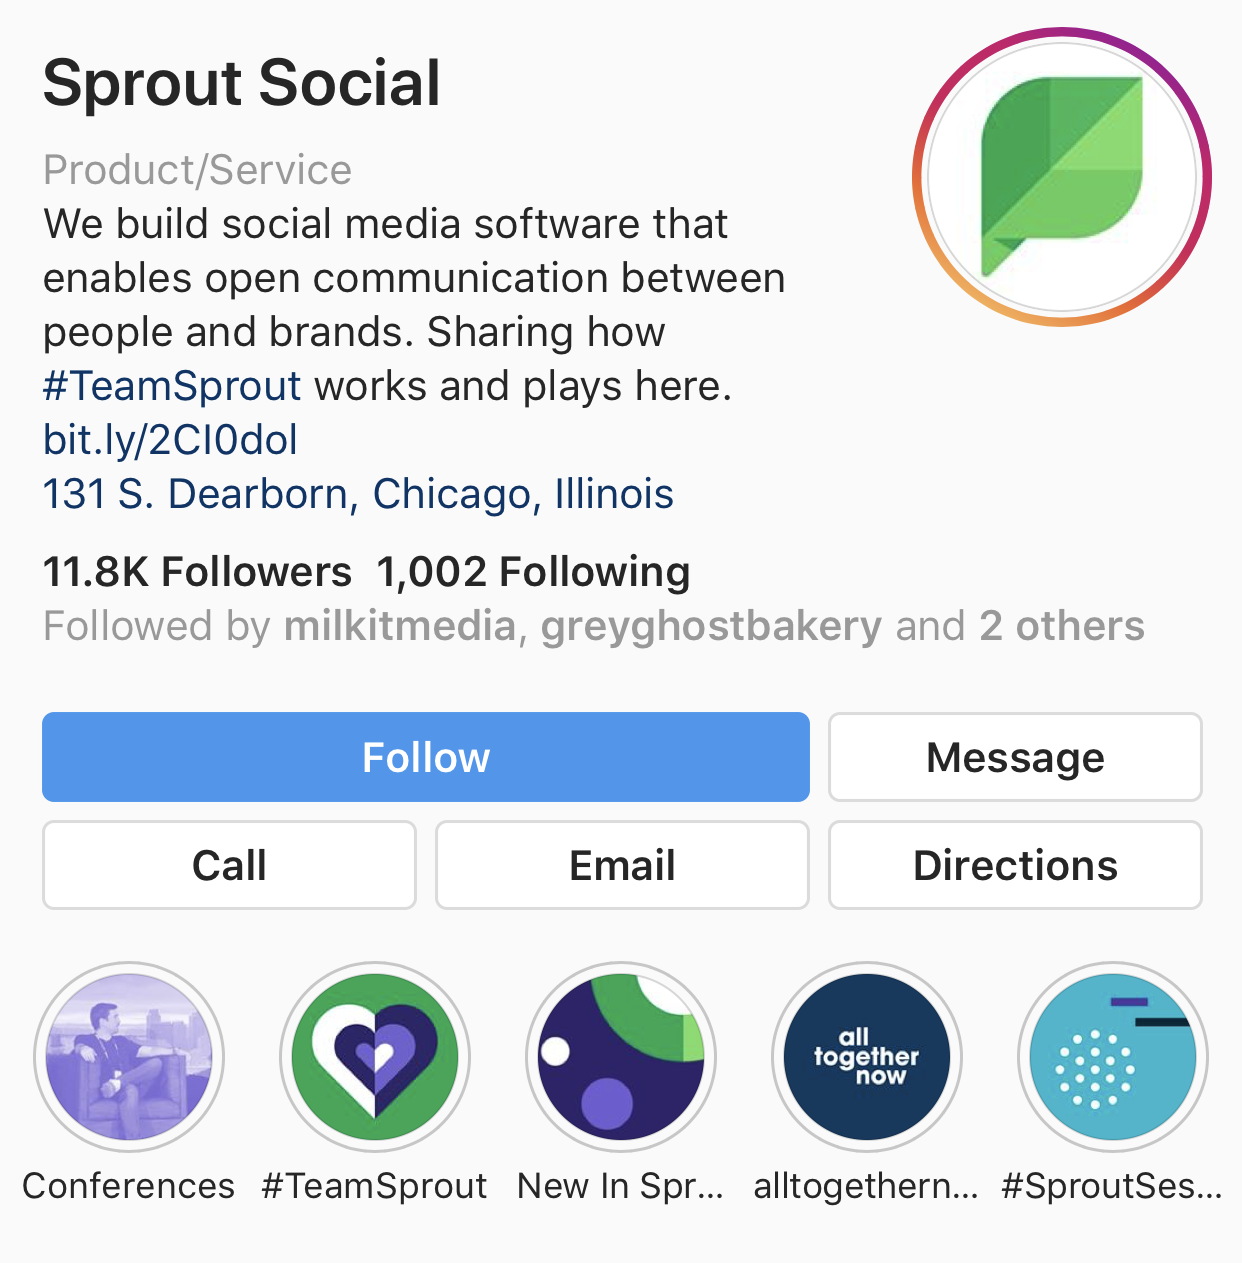 17 Instagram Stats Marketers Need to Know for 2019 | Sprout